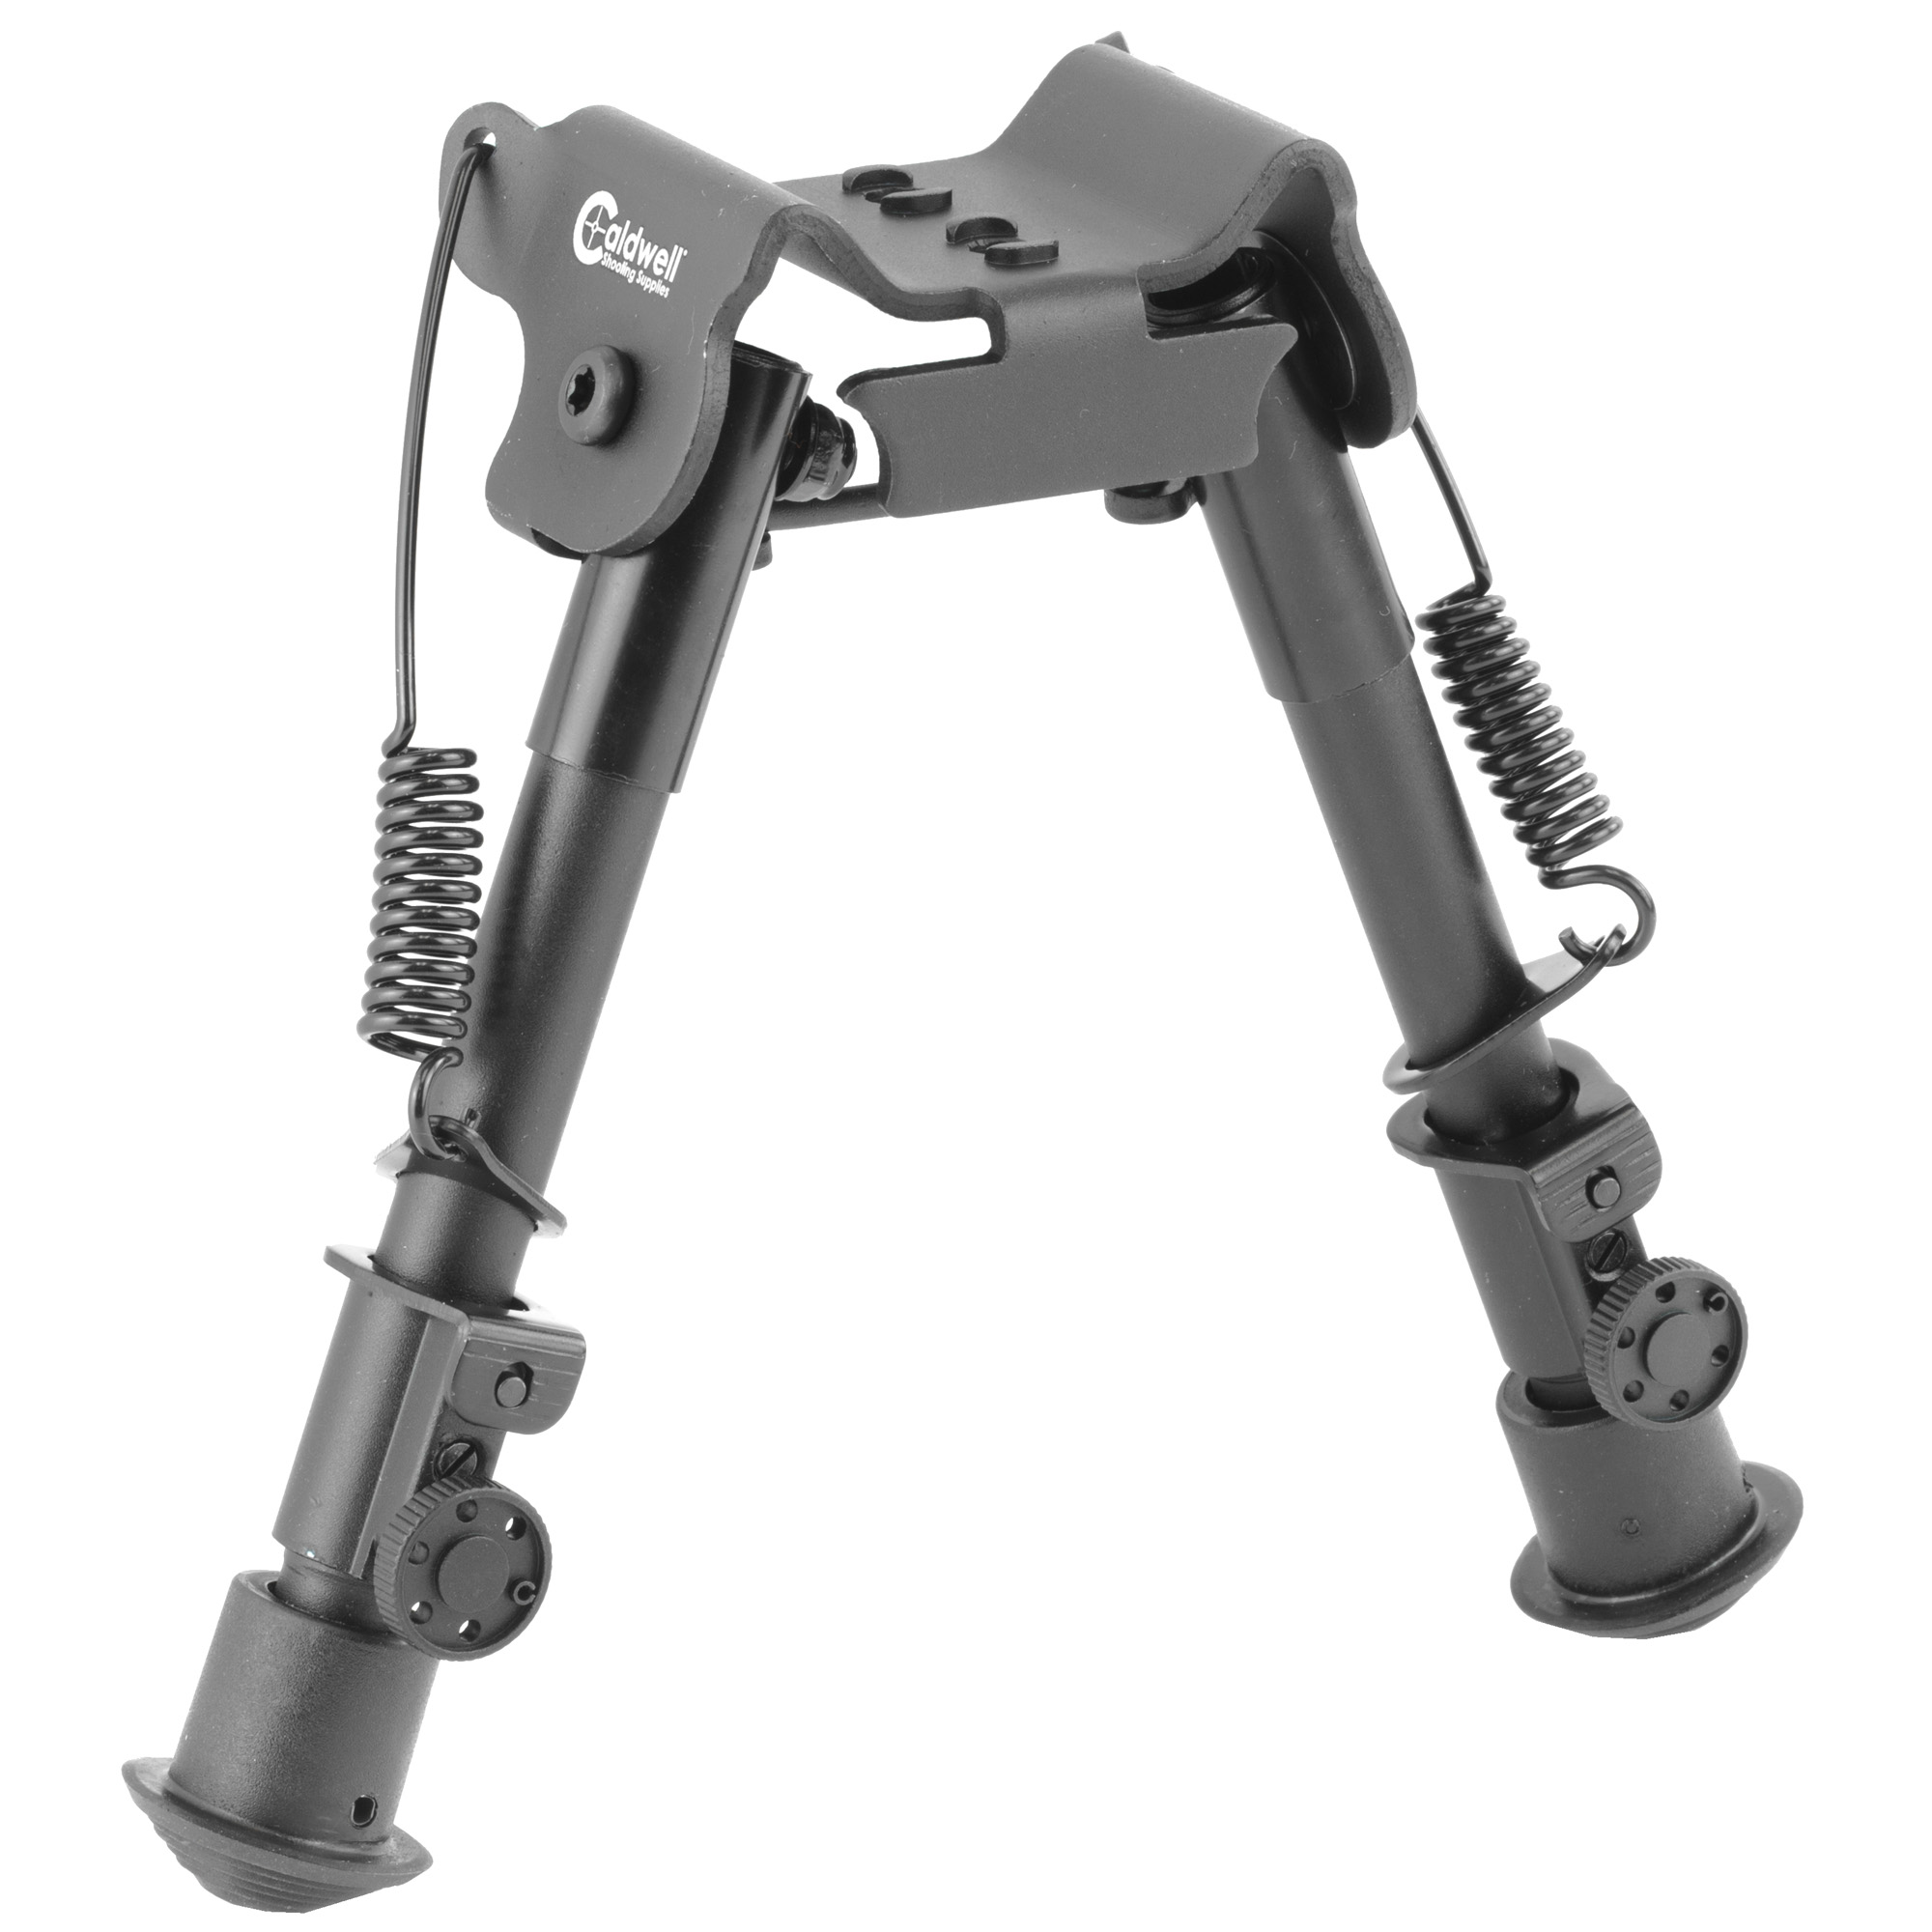 """Caldwell's XLA 6""""-9"""" M-Lok/KeyMod compatible bipod deploys quickly with legs that spring out to the shooting position giving you an instantaneous stable shooting platform. It attaches to M-Lok or KeyMod handguards with one of the two included mounts. Strong and lightweight"""" it's collapsible for easy transport."""